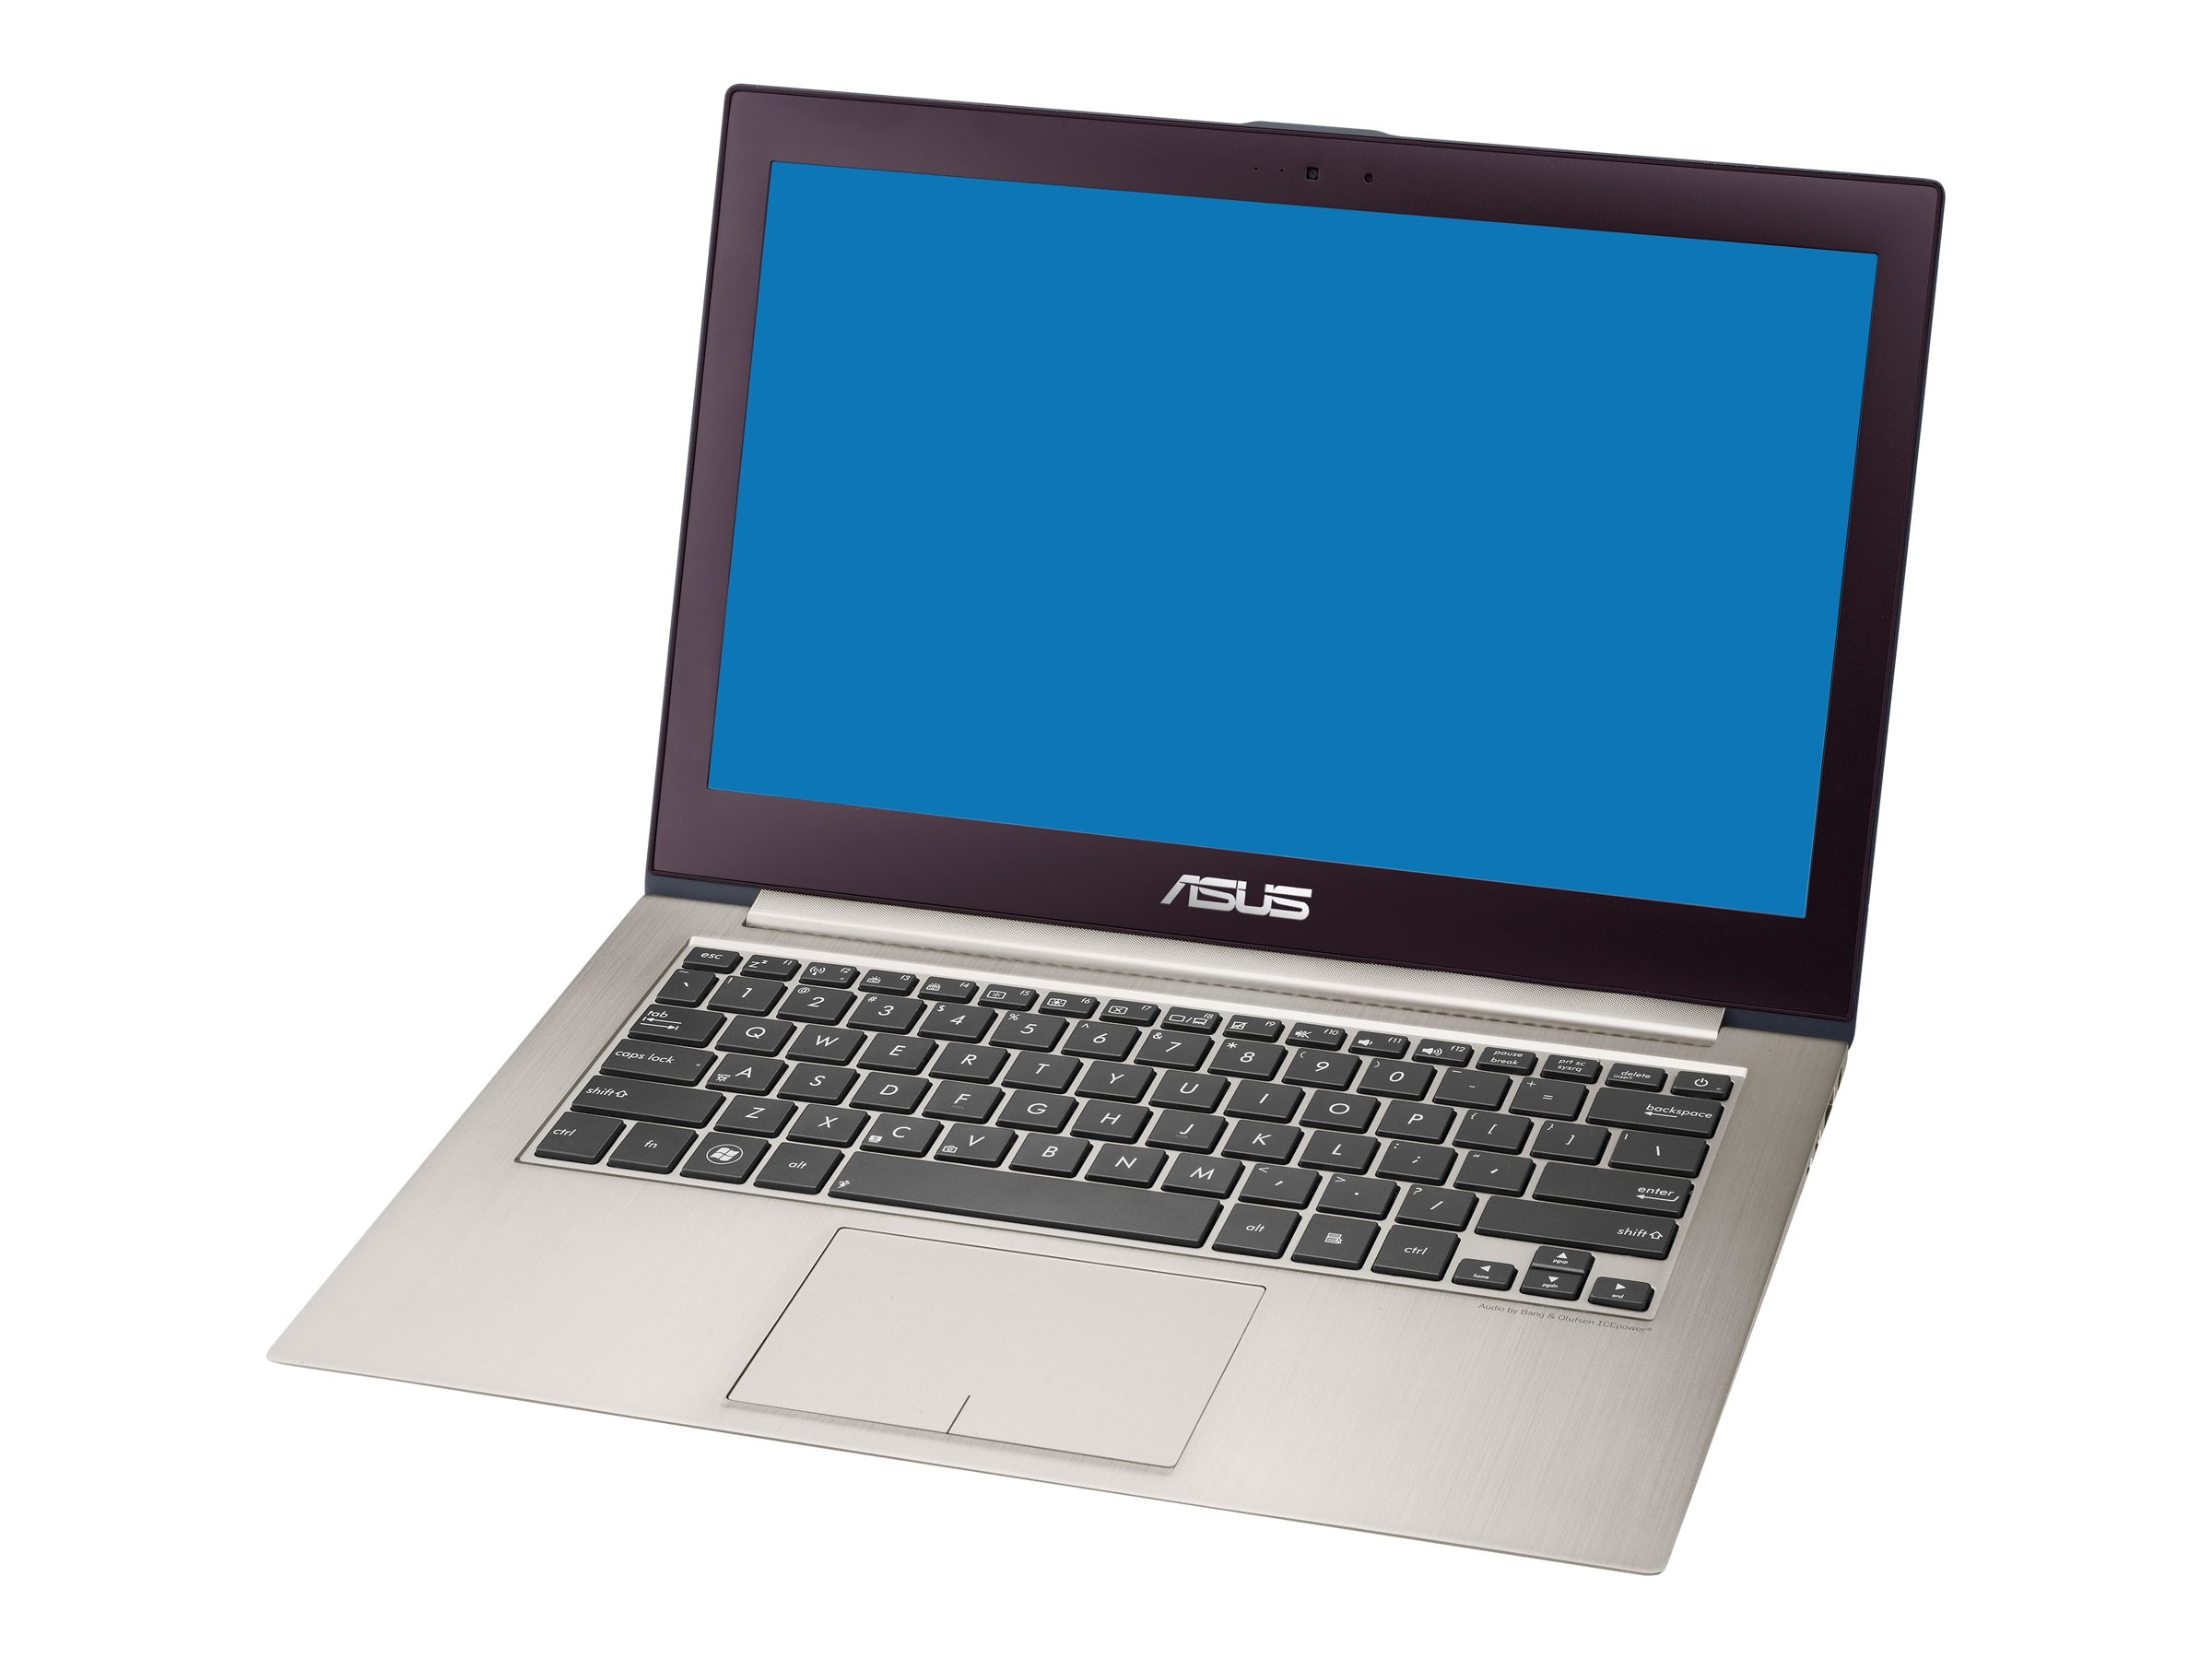 Scratch & Dent Asus UX31A-XB52 Zenbook Core i5 1.7GHz 4GB 256GB SSD 13.3 W7P64, UX31A-XB52, 15157617, Notebooks